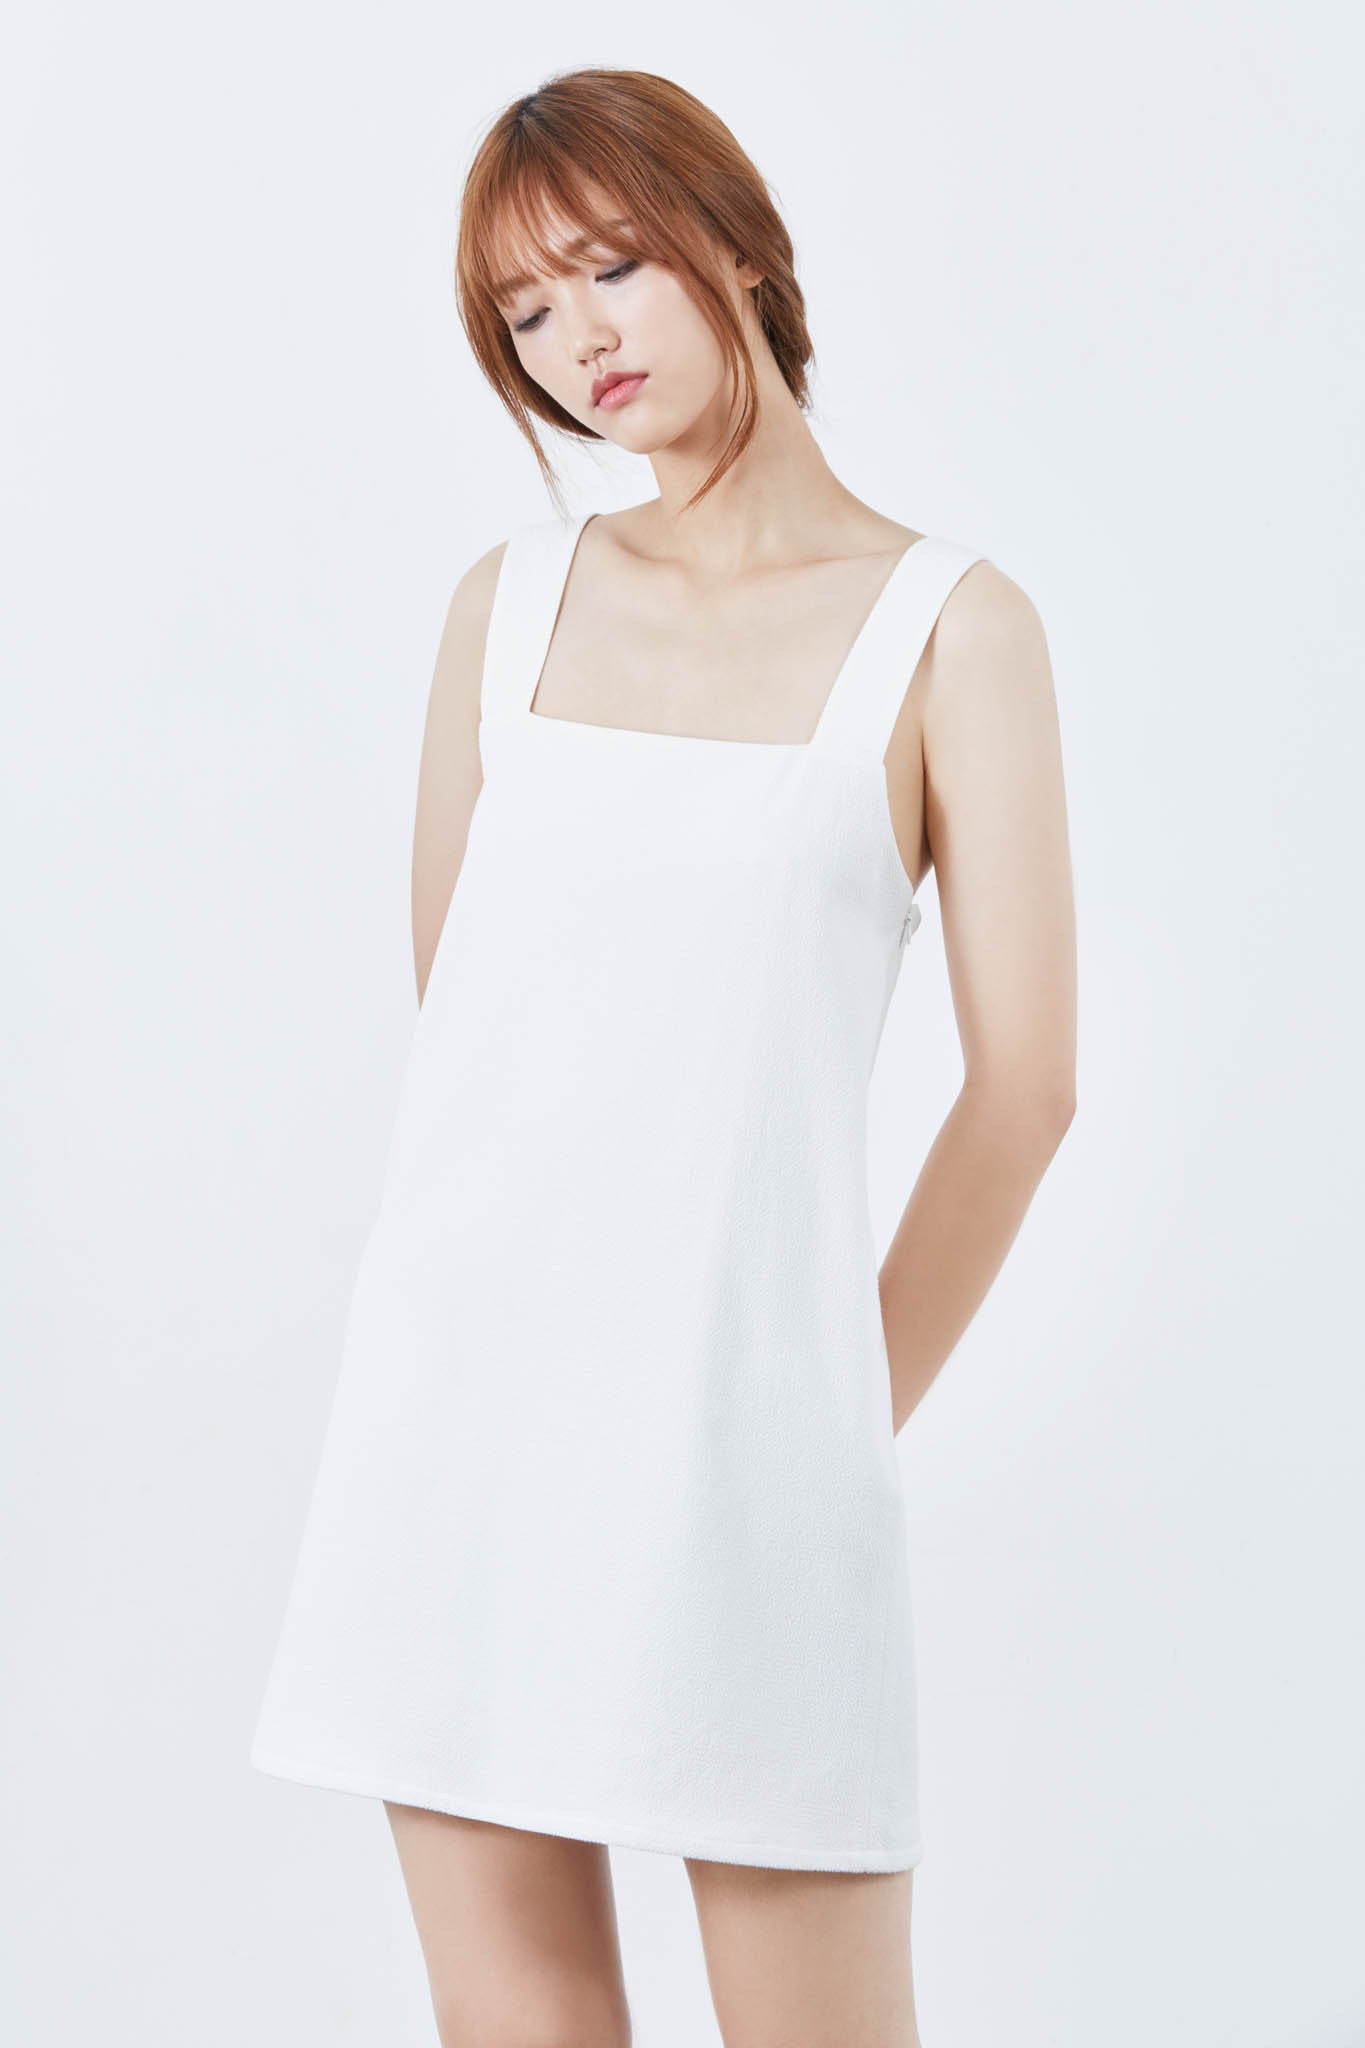 Sun cross-back dress